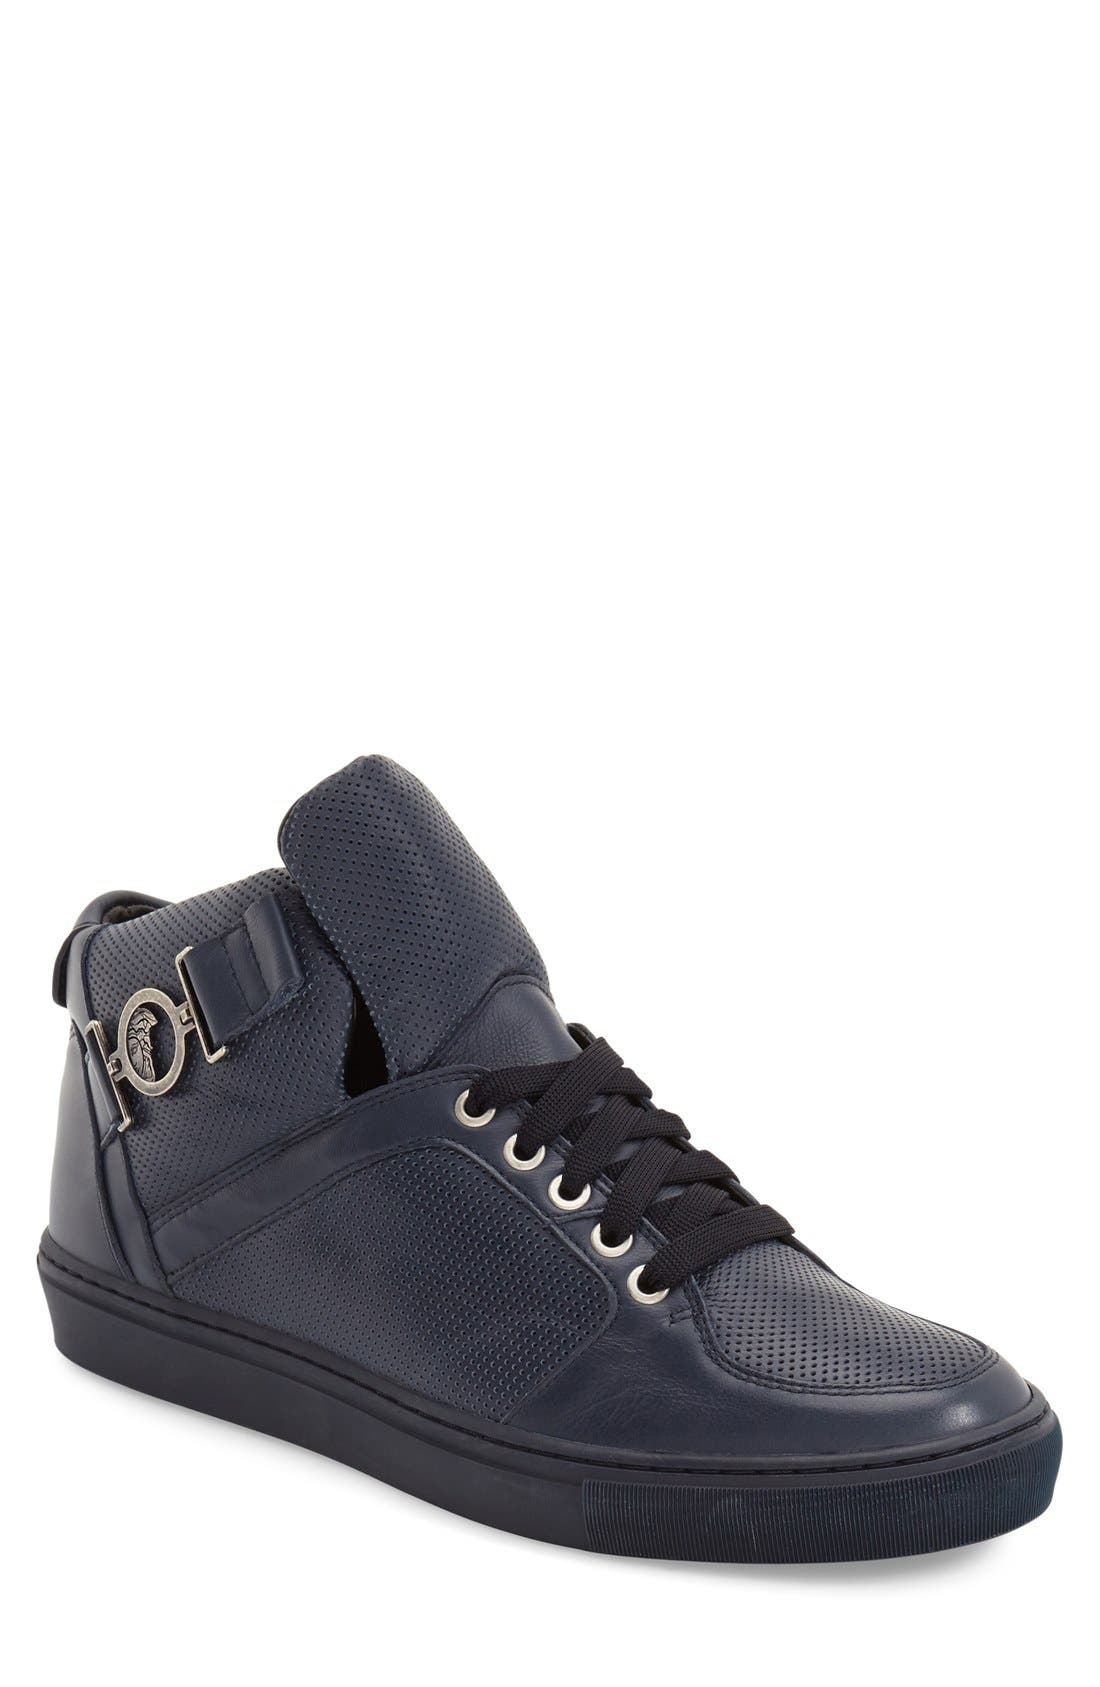 Alternate Image 1 Selected - Versace Collection Buckle High Top Sneaker (Men)